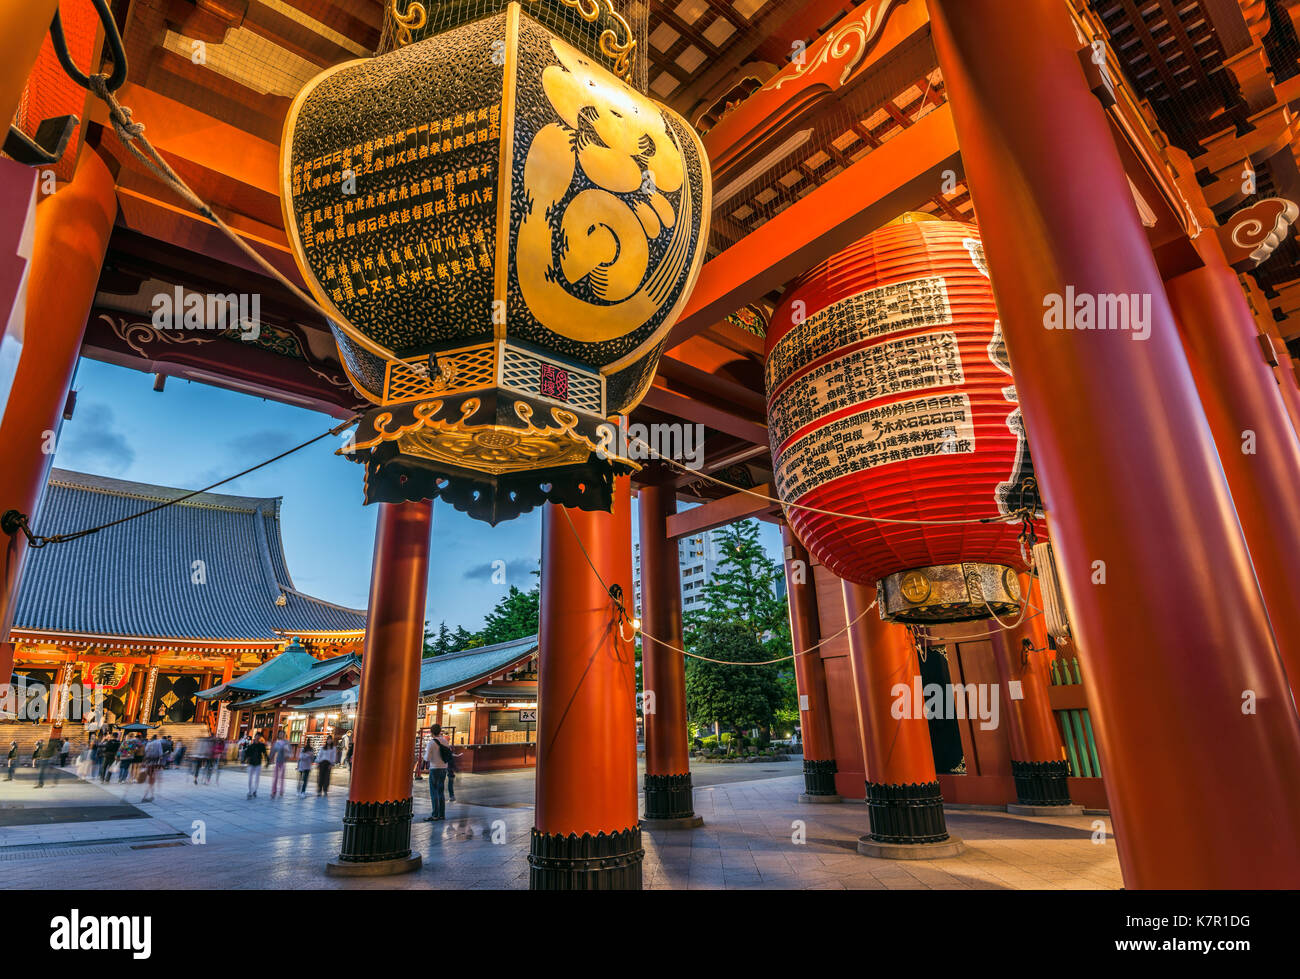 Ancient Edo era traditional paper lantern at entrance of Sensoji, also known as Asakusa Kannon Temple, Asakusa, Tokyo, Japan | Traditionelle Edo-Zeit  - Stock Image